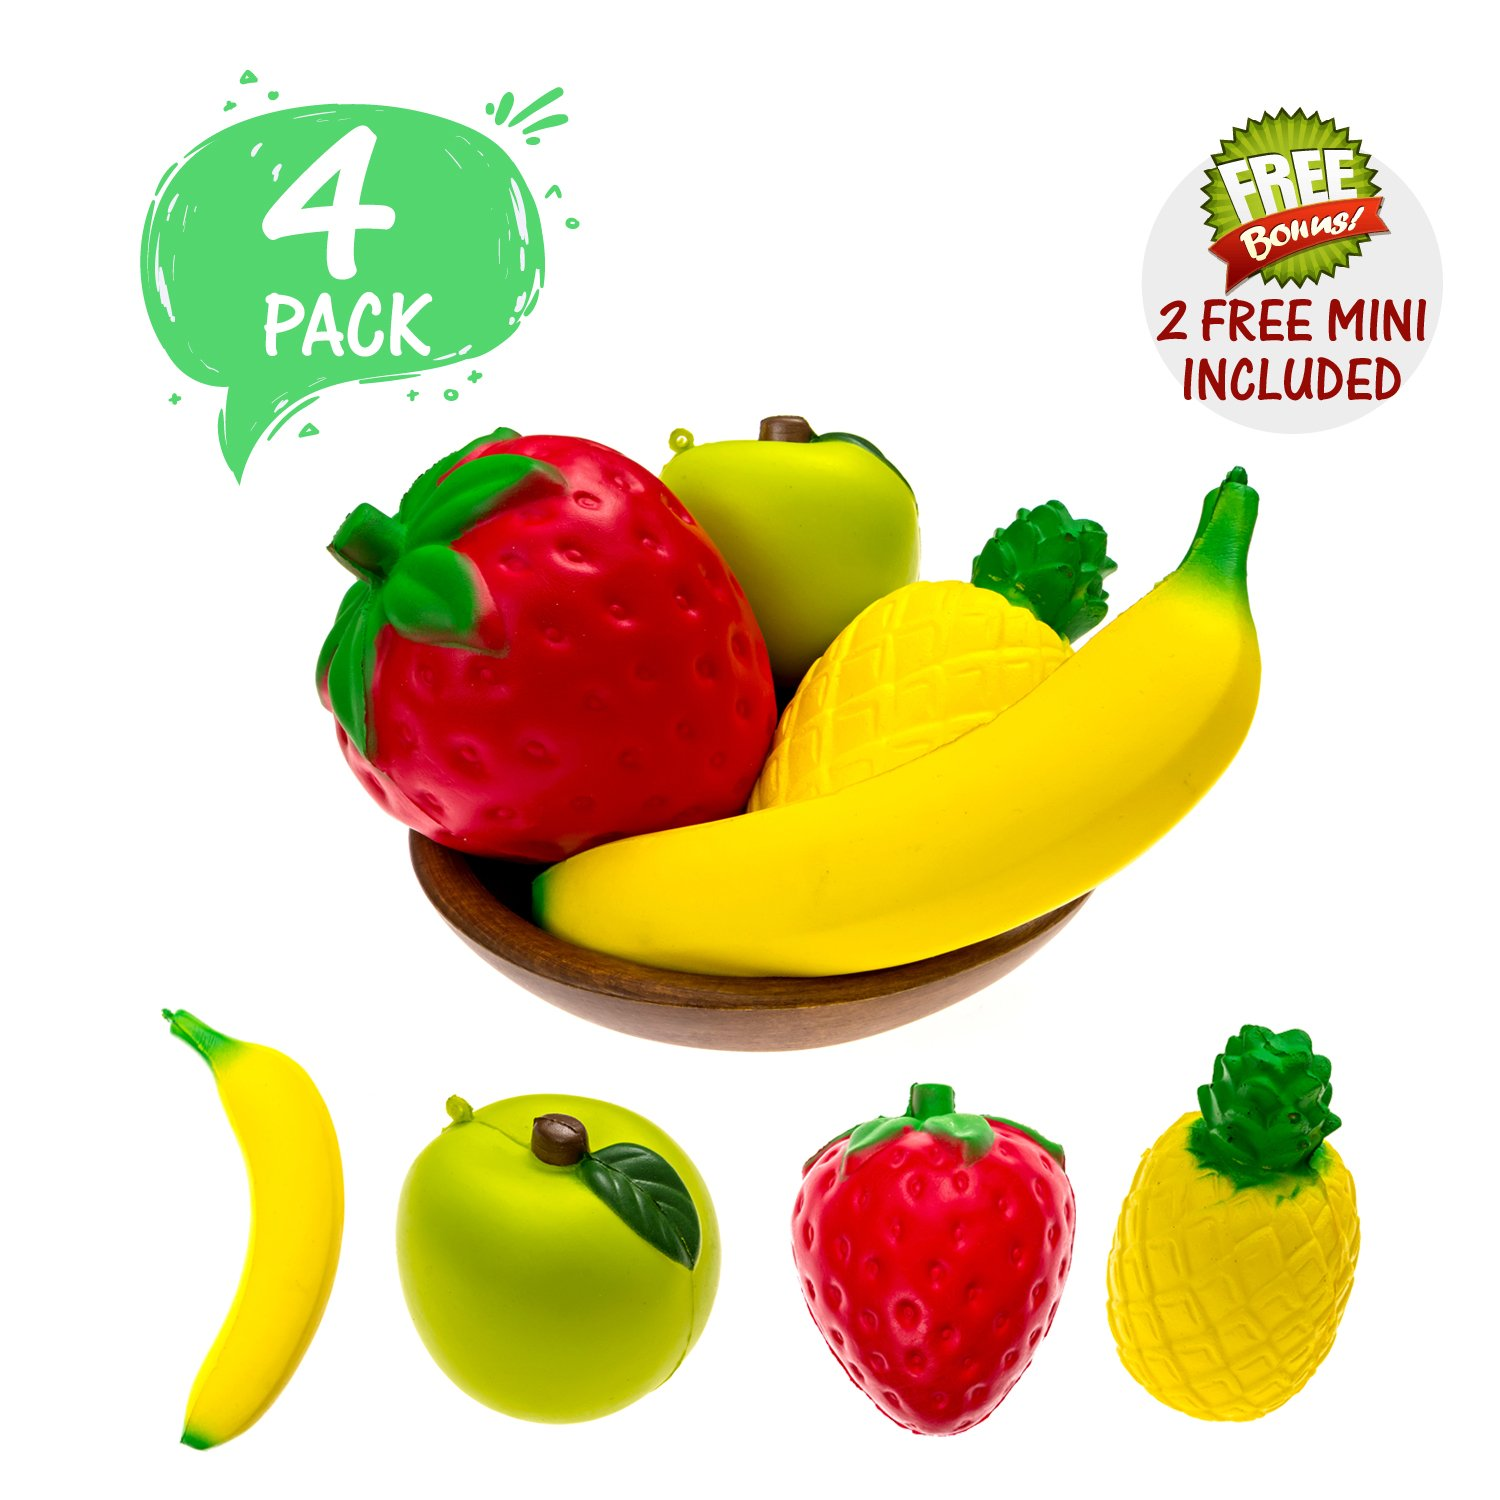 Ultimate Squishies 4 PACK Fruit Squishies Squishy Slow Rising Kawaii Prime Banana Pineapple Apple Strawberry Scented Stress Relieve Adults and Kids BONUS 2 FREE MINI SQUISHIES